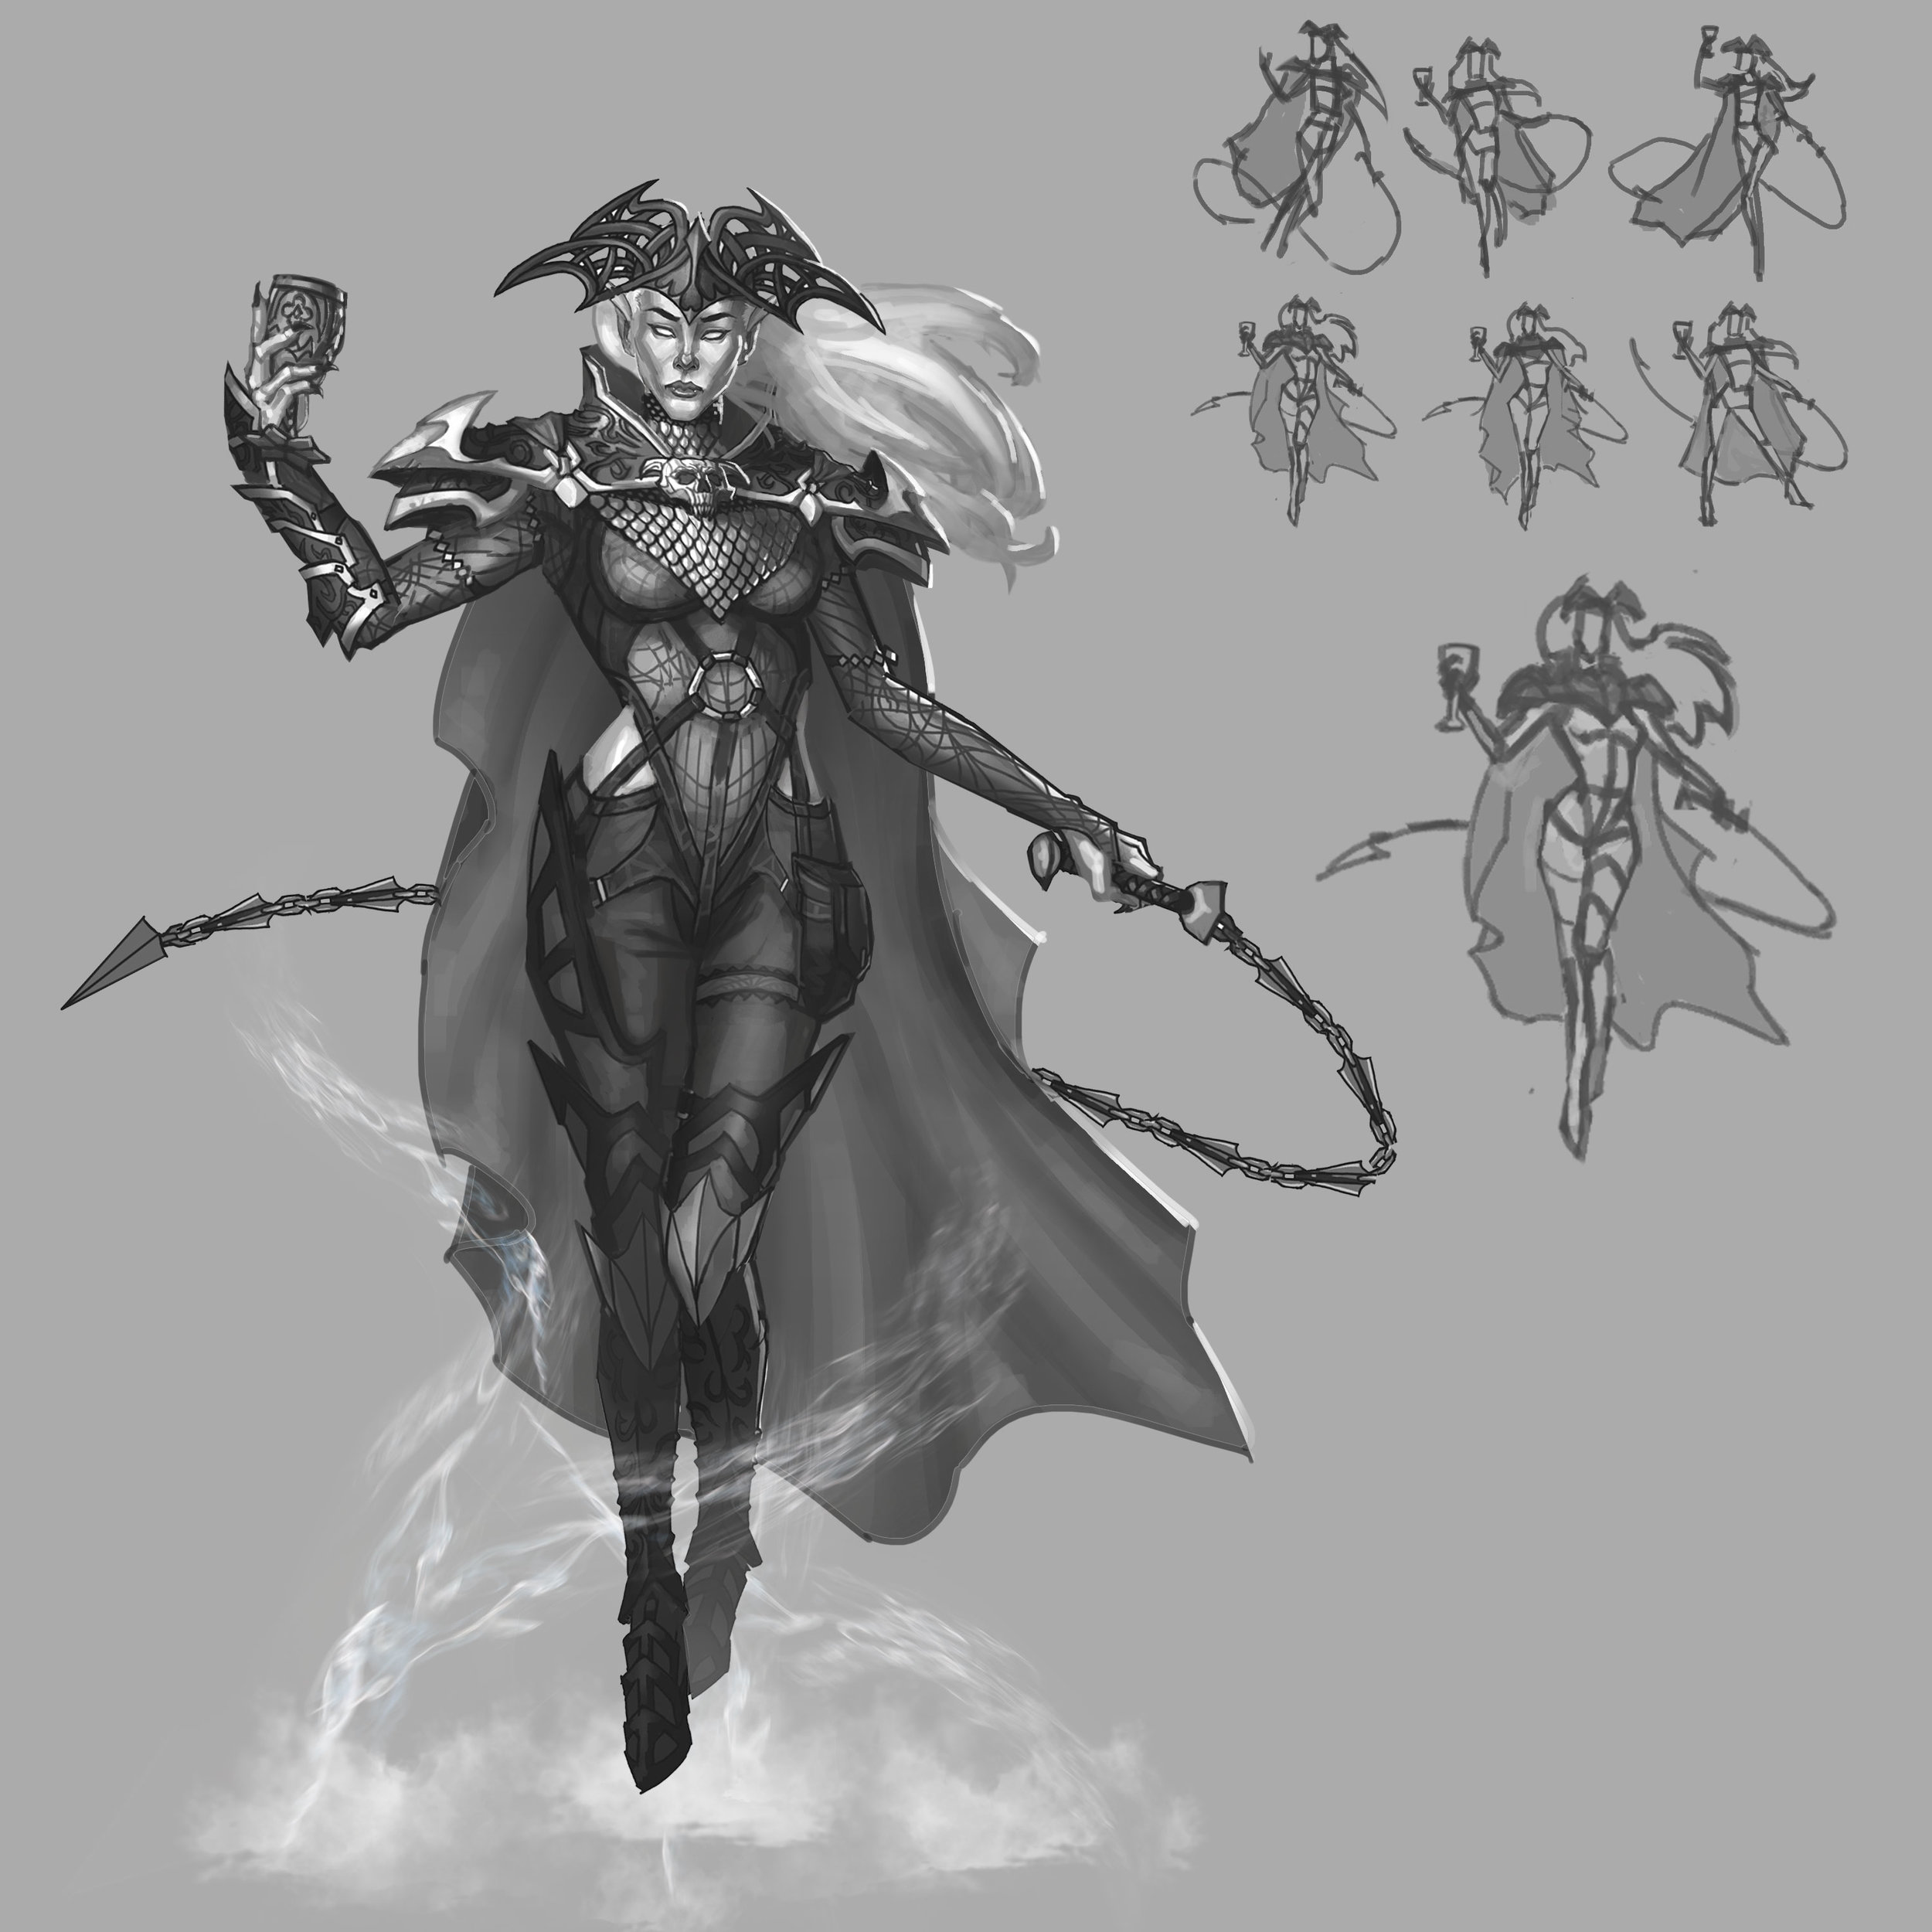 brendan_milos-character_design_for_film_and_games-wk5-1581812693.jpg